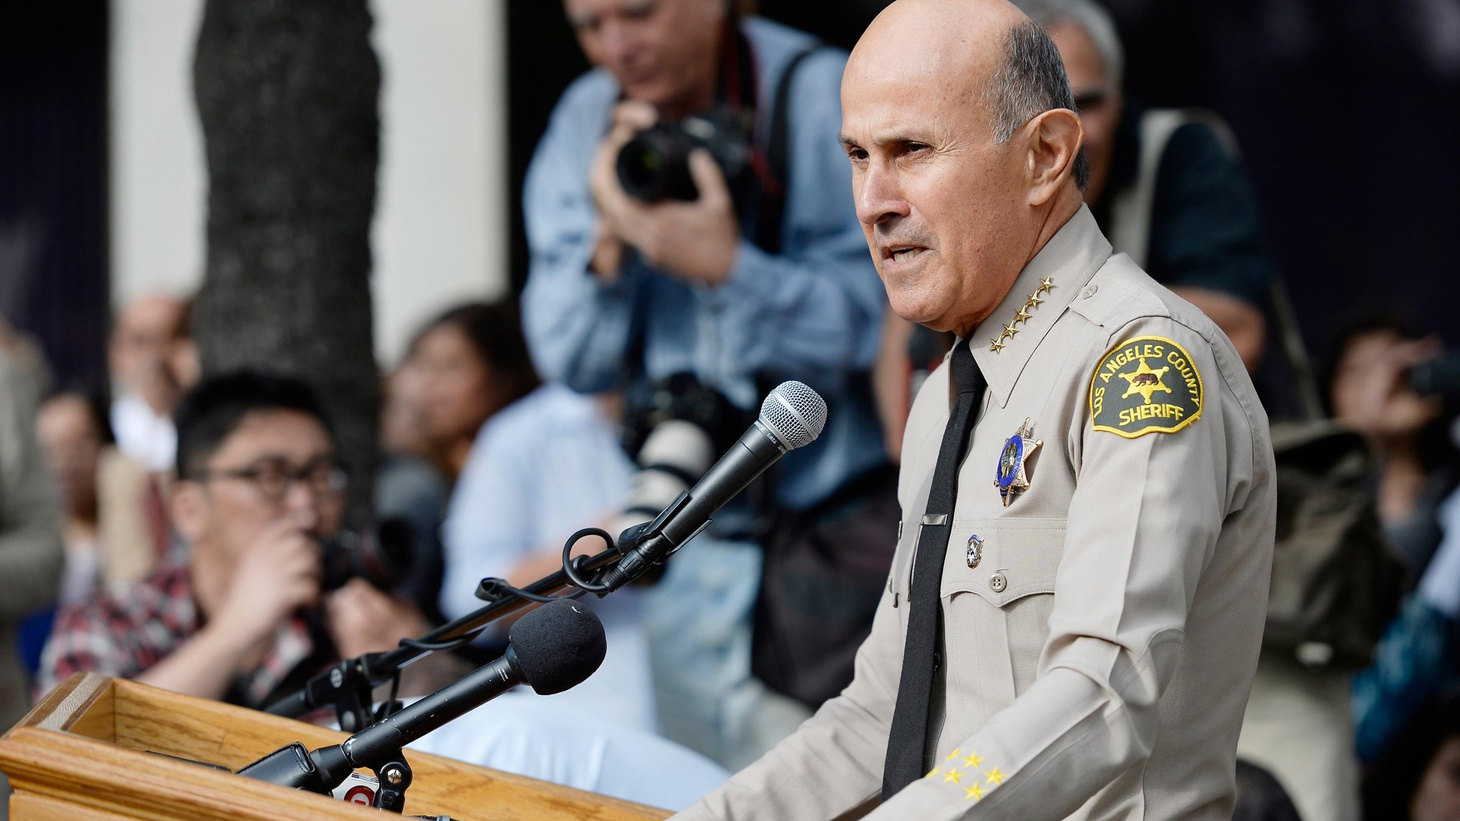 Today, after 15 years as Los Angeles Sheriff, Lee Baca is stepping down. Last month, the US attorney indicted 18 sheriff's deputies. How much is he to blame?